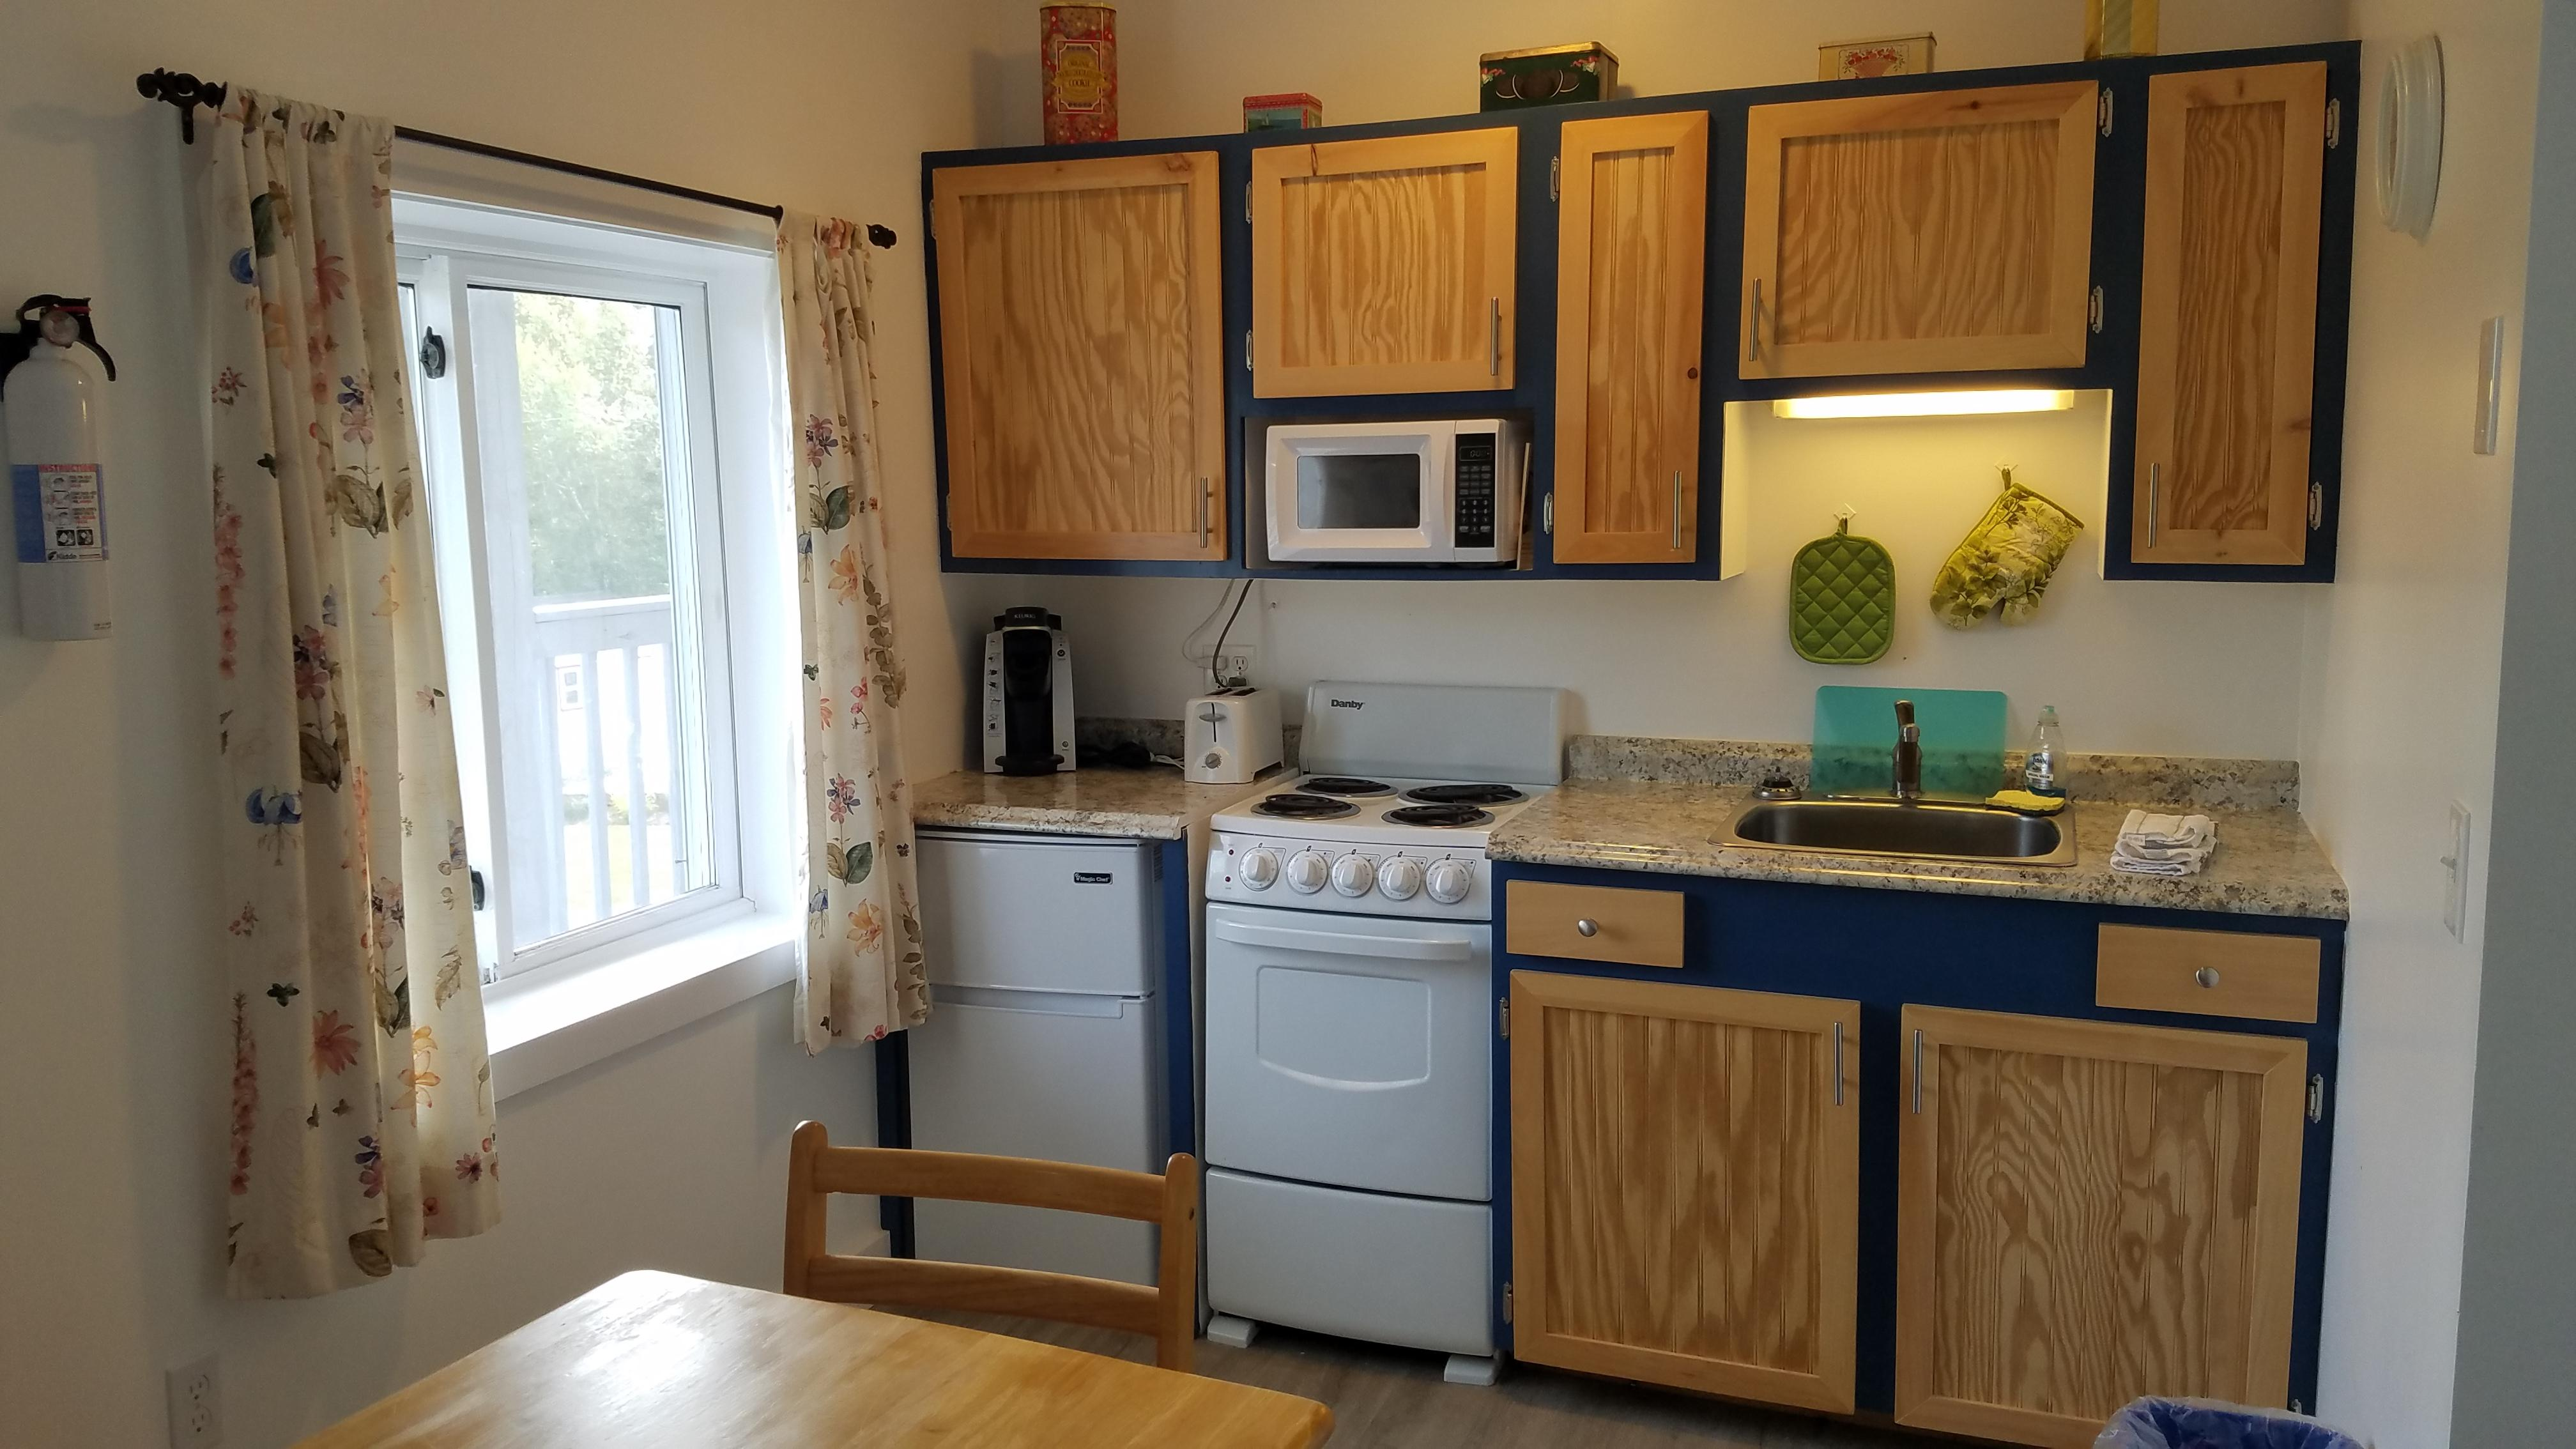 full kitchens for lodging in acadia national park